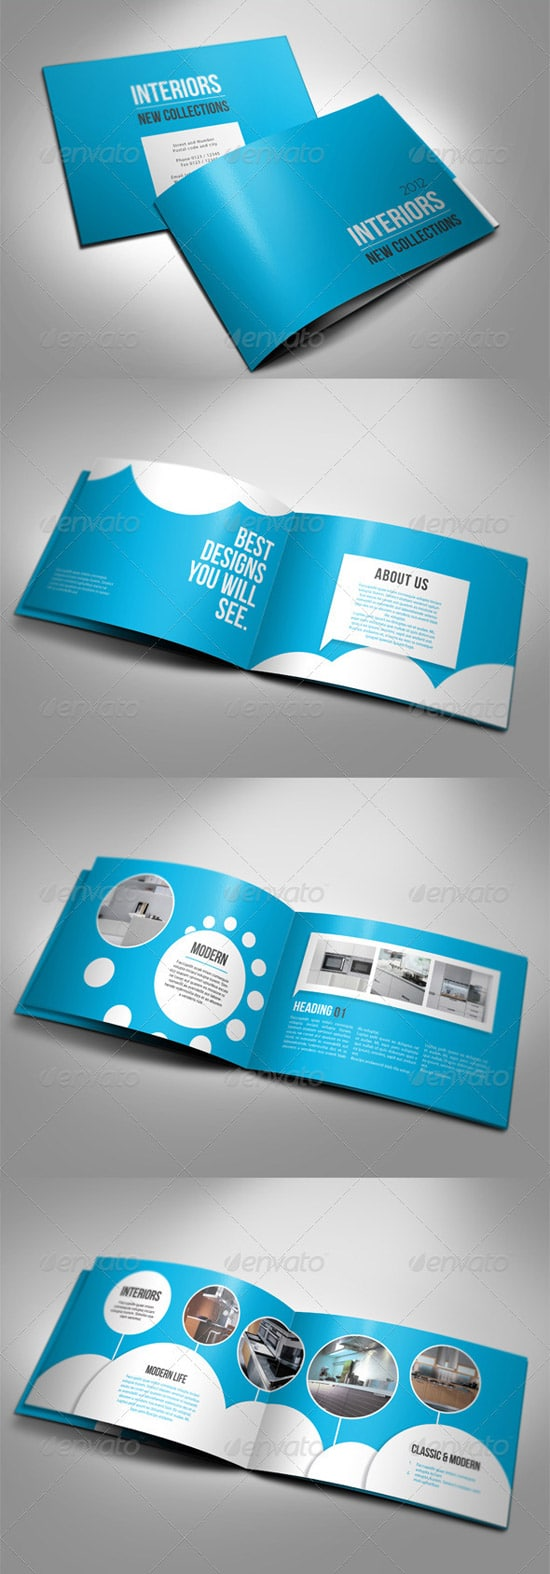 brochure booklet templates - brochure templates 40 very affordable high quality